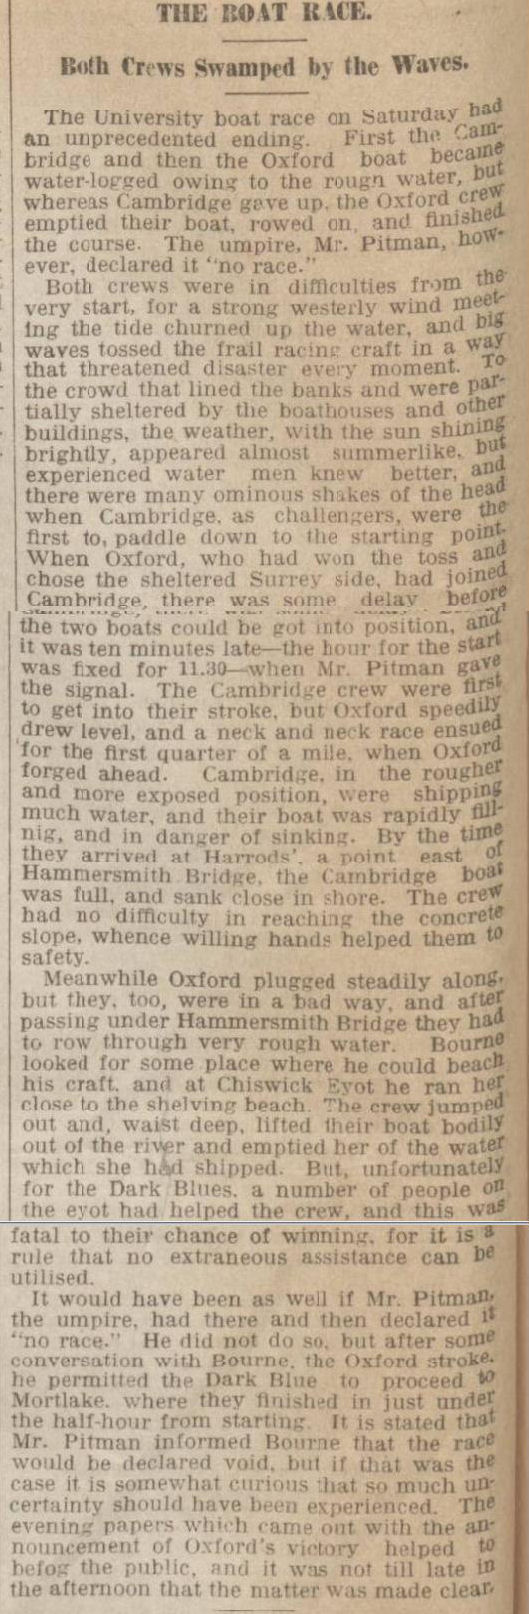 historical newspaper report about the 1912 oxford and cambridge boat race